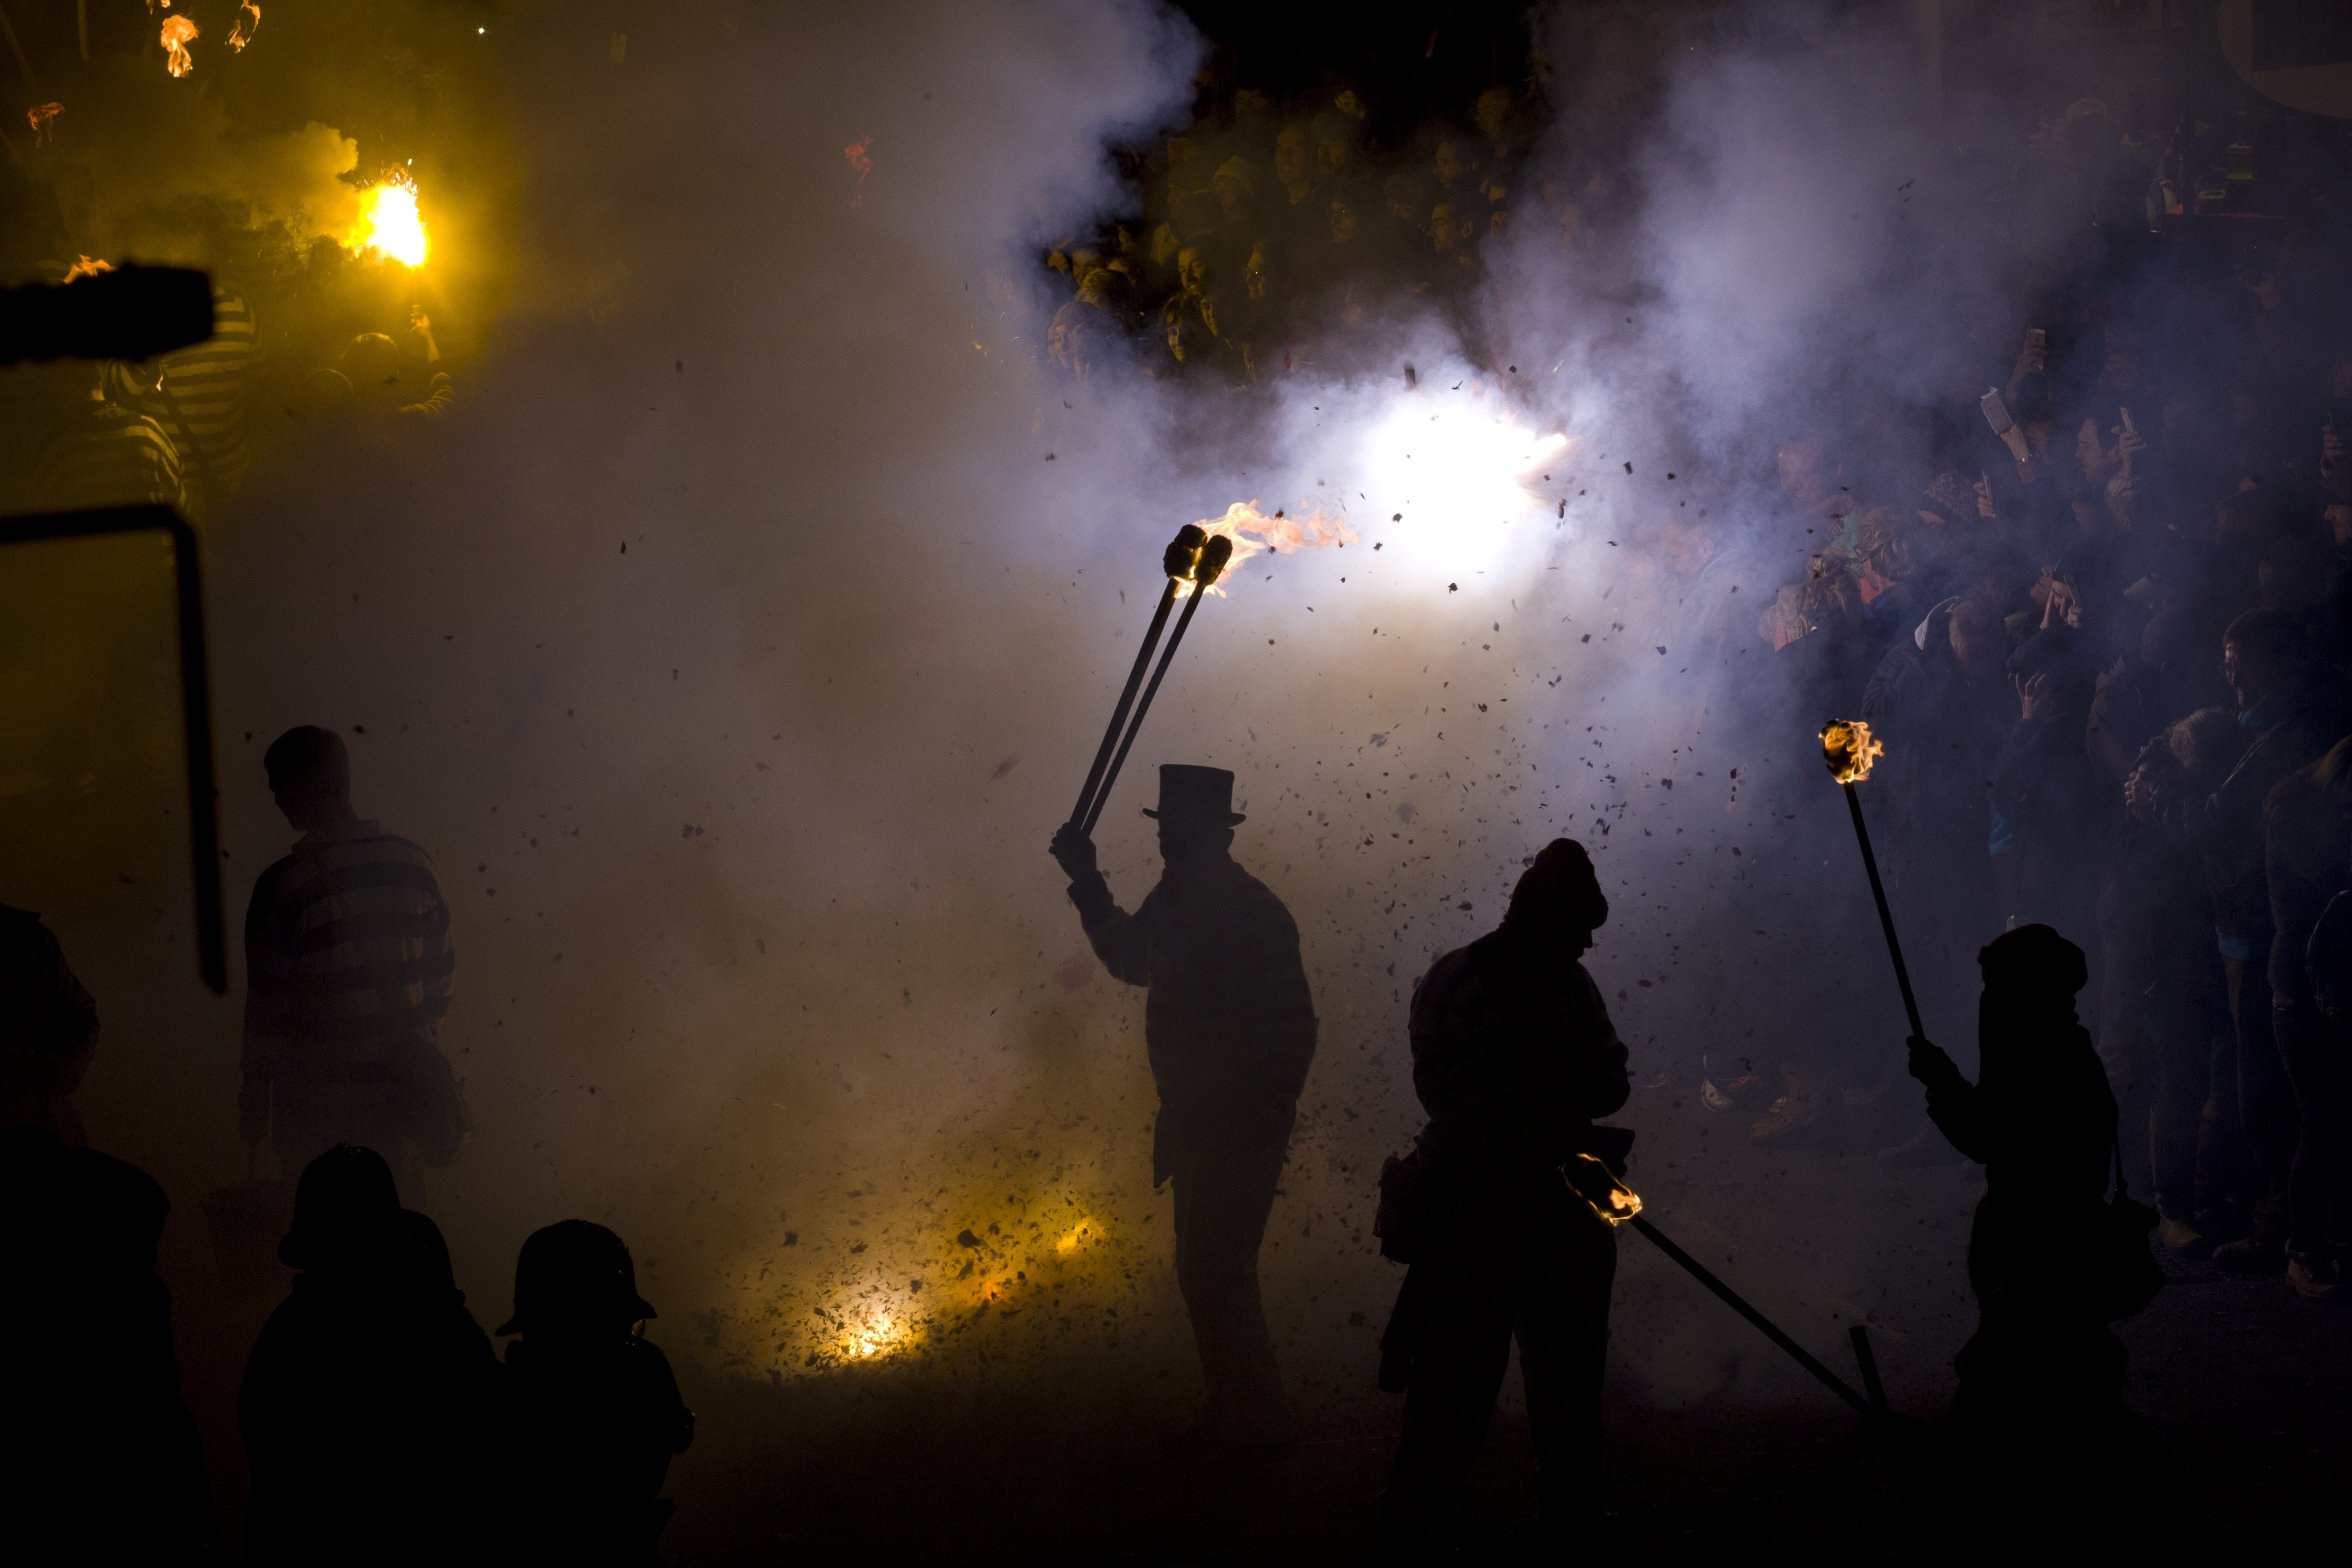 Bonfire societies parade through the streets of Lewes in Sussex, during the traditional Bonfire Night celebrations on Nov. 5, 2014.